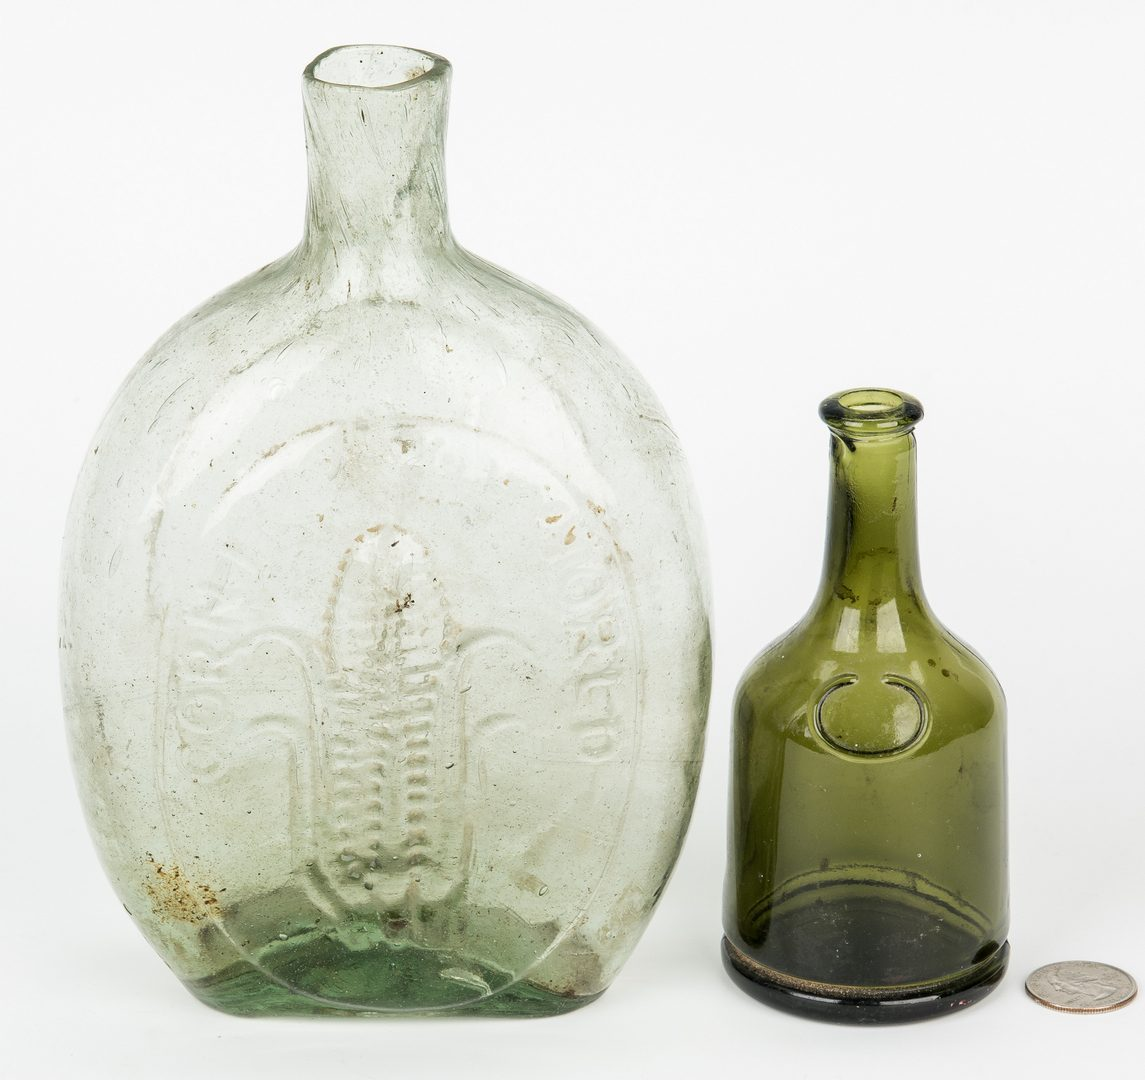 Lot 695: 2 Banks, 1 Historical Flask & 1 Bottle